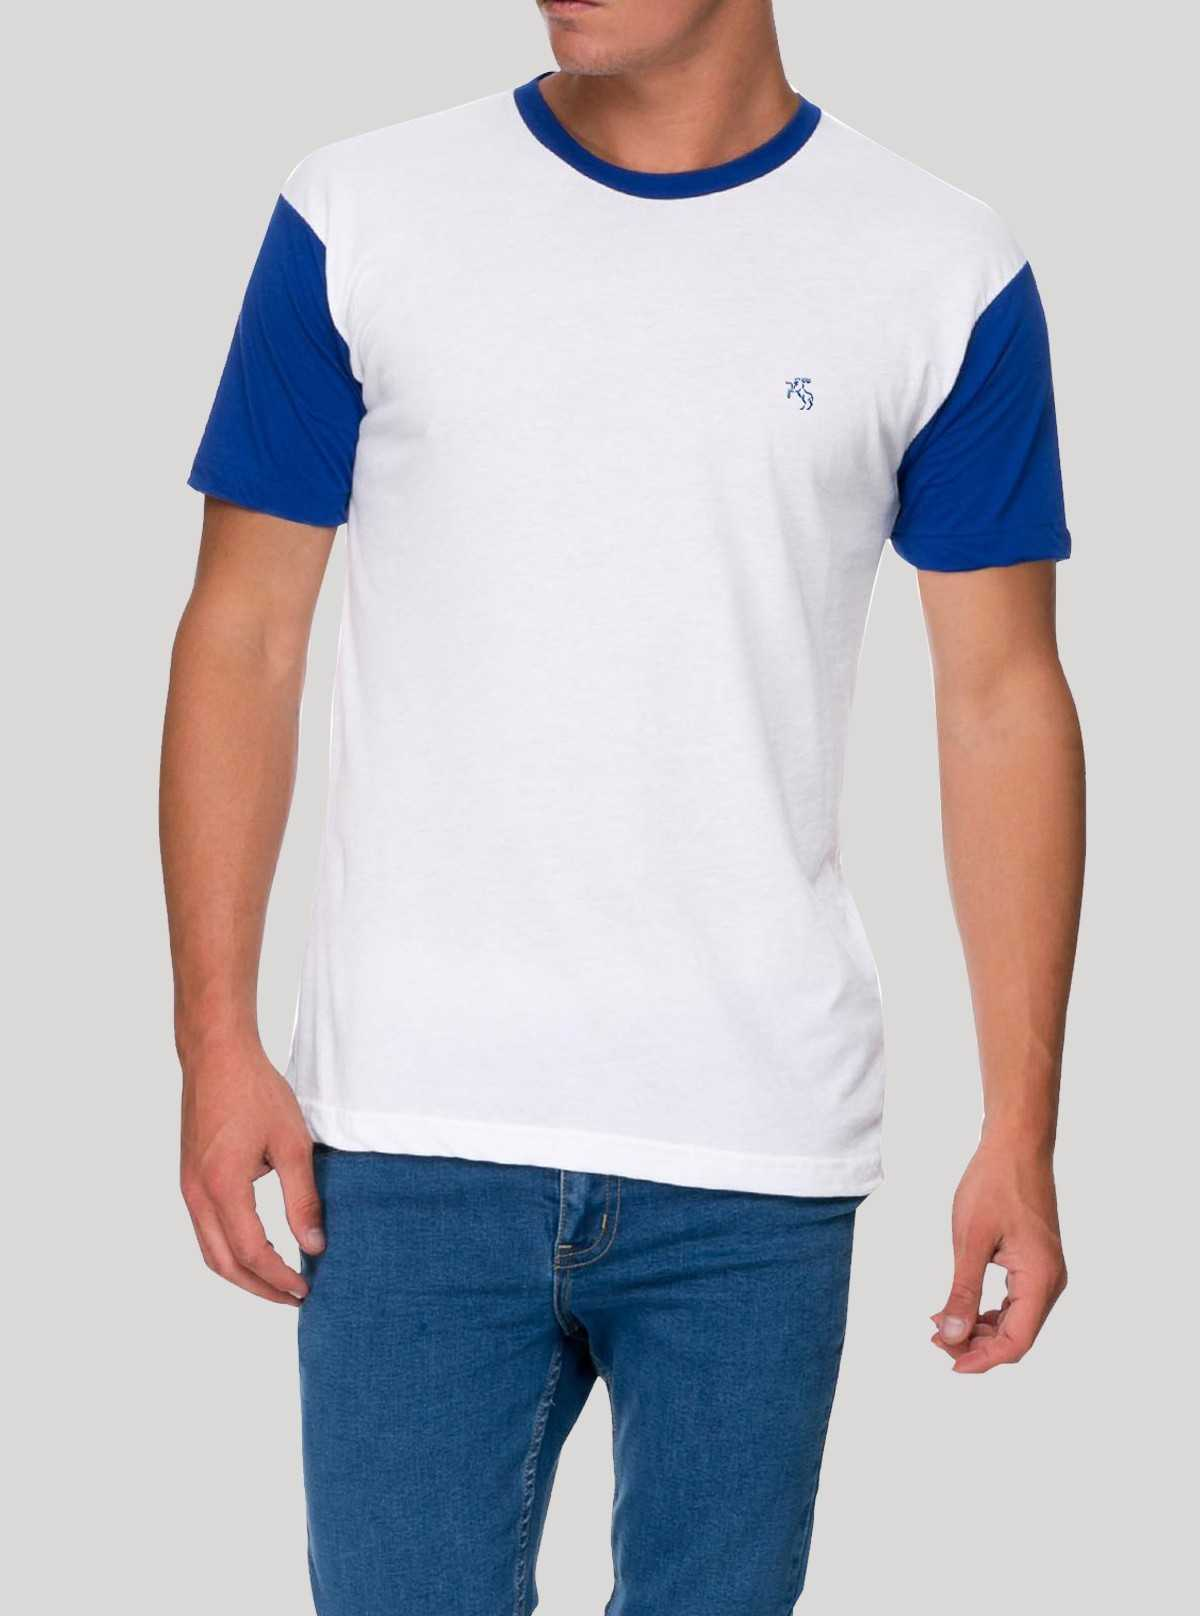 Mens Contrast Sleeve TShirt - White